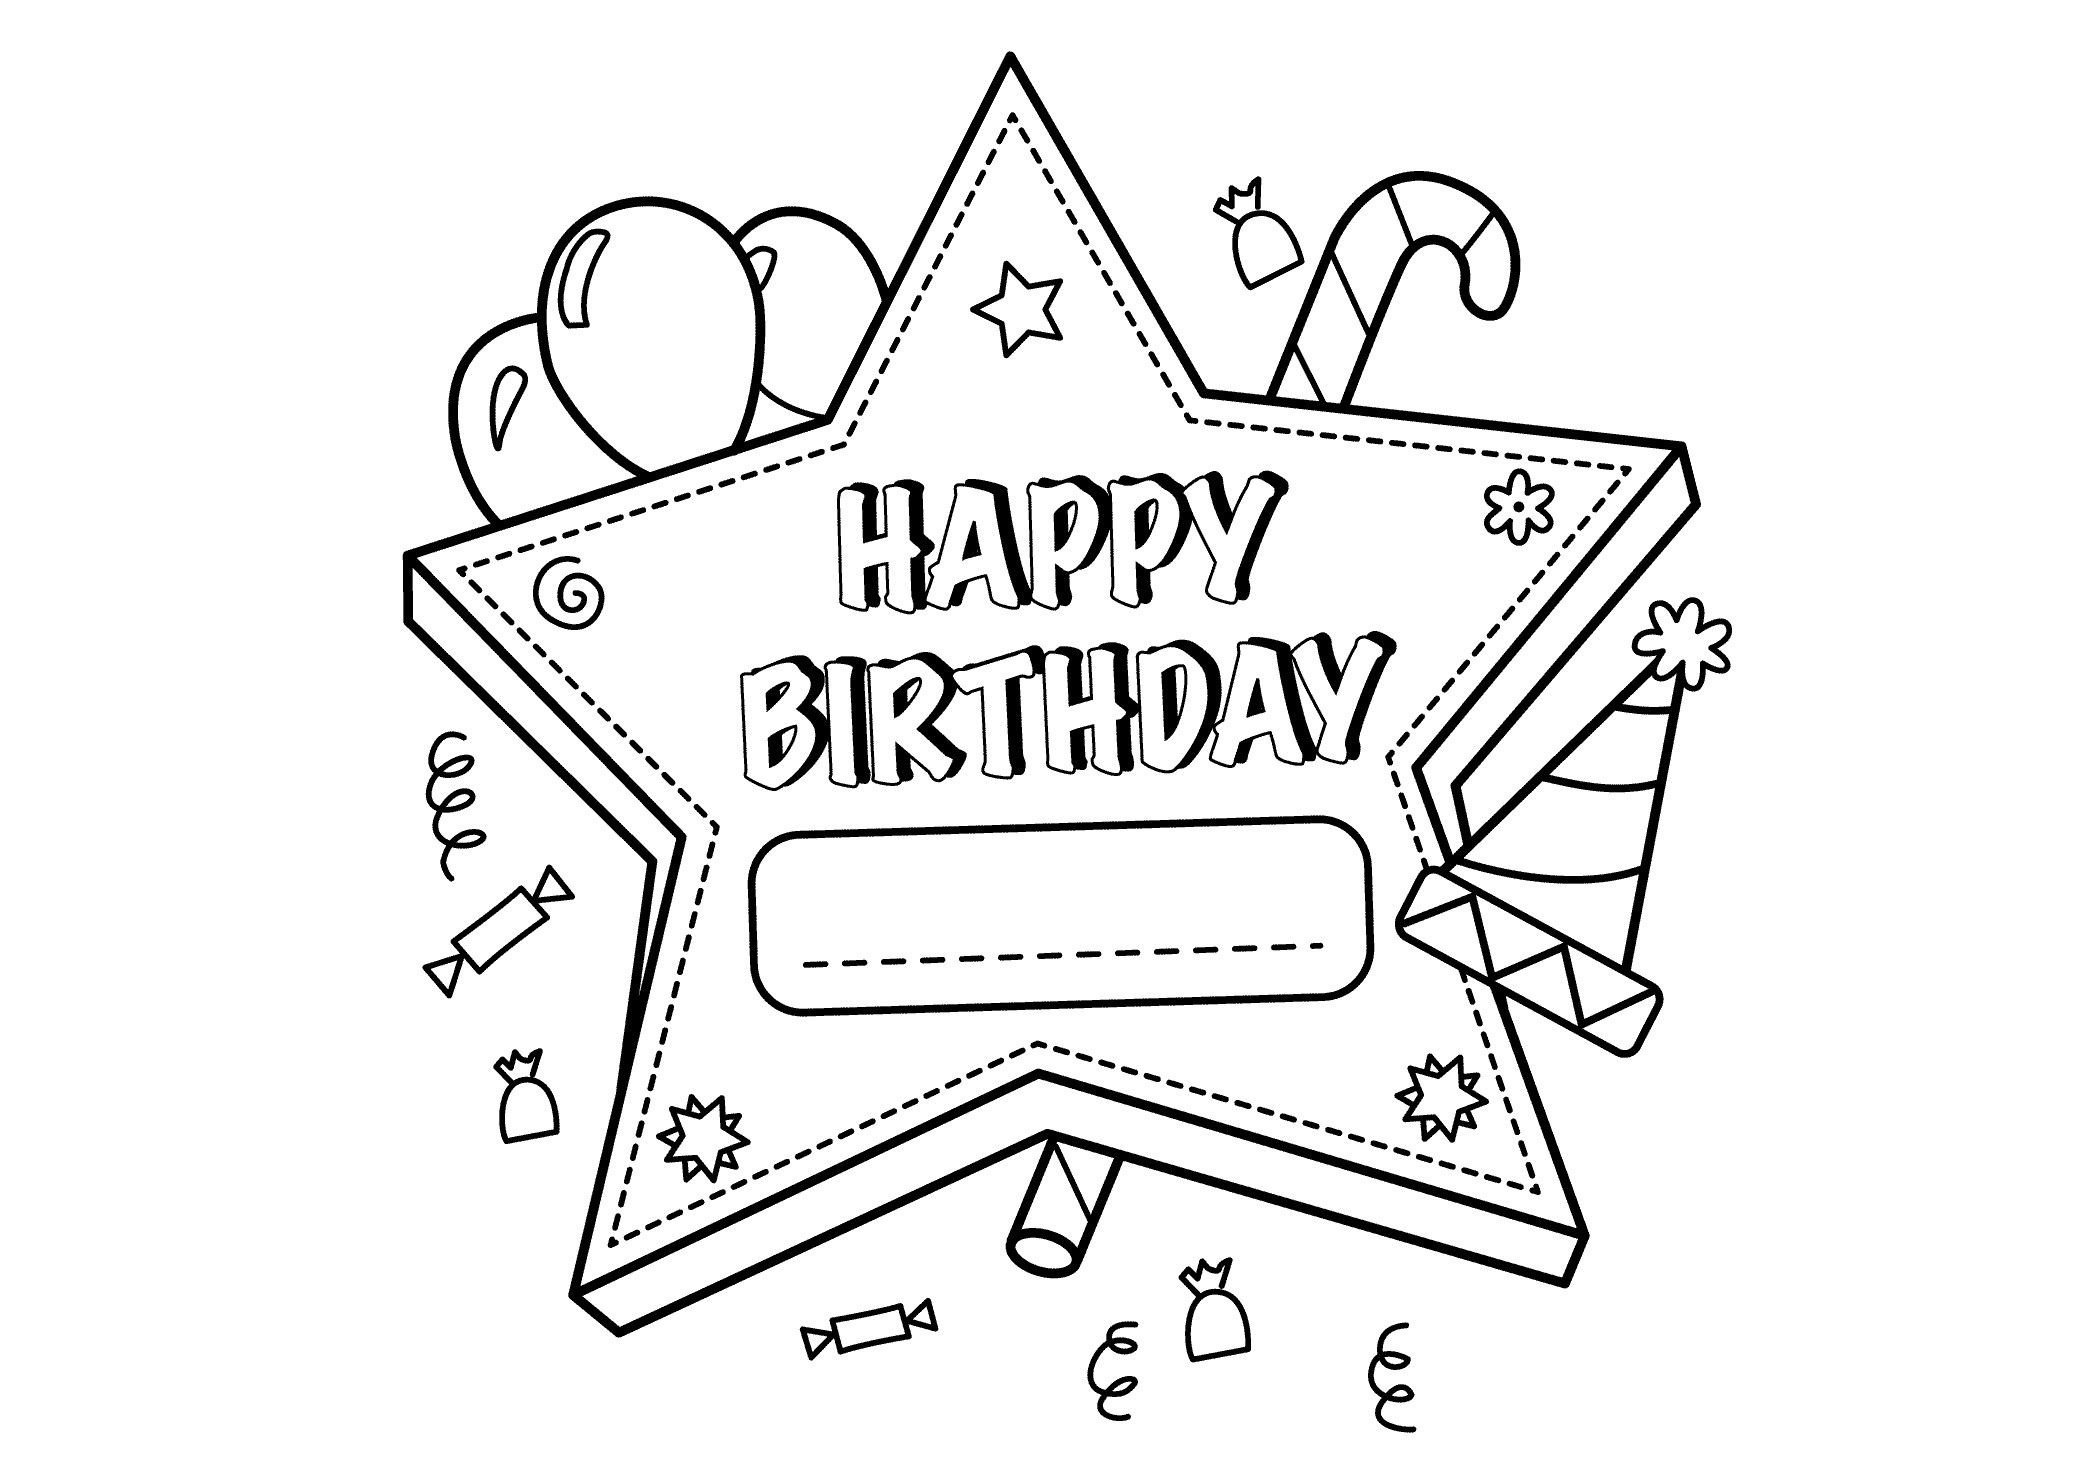 birthday coloring pages for boys ; Happy-birthday-coloring-pages-for-boys